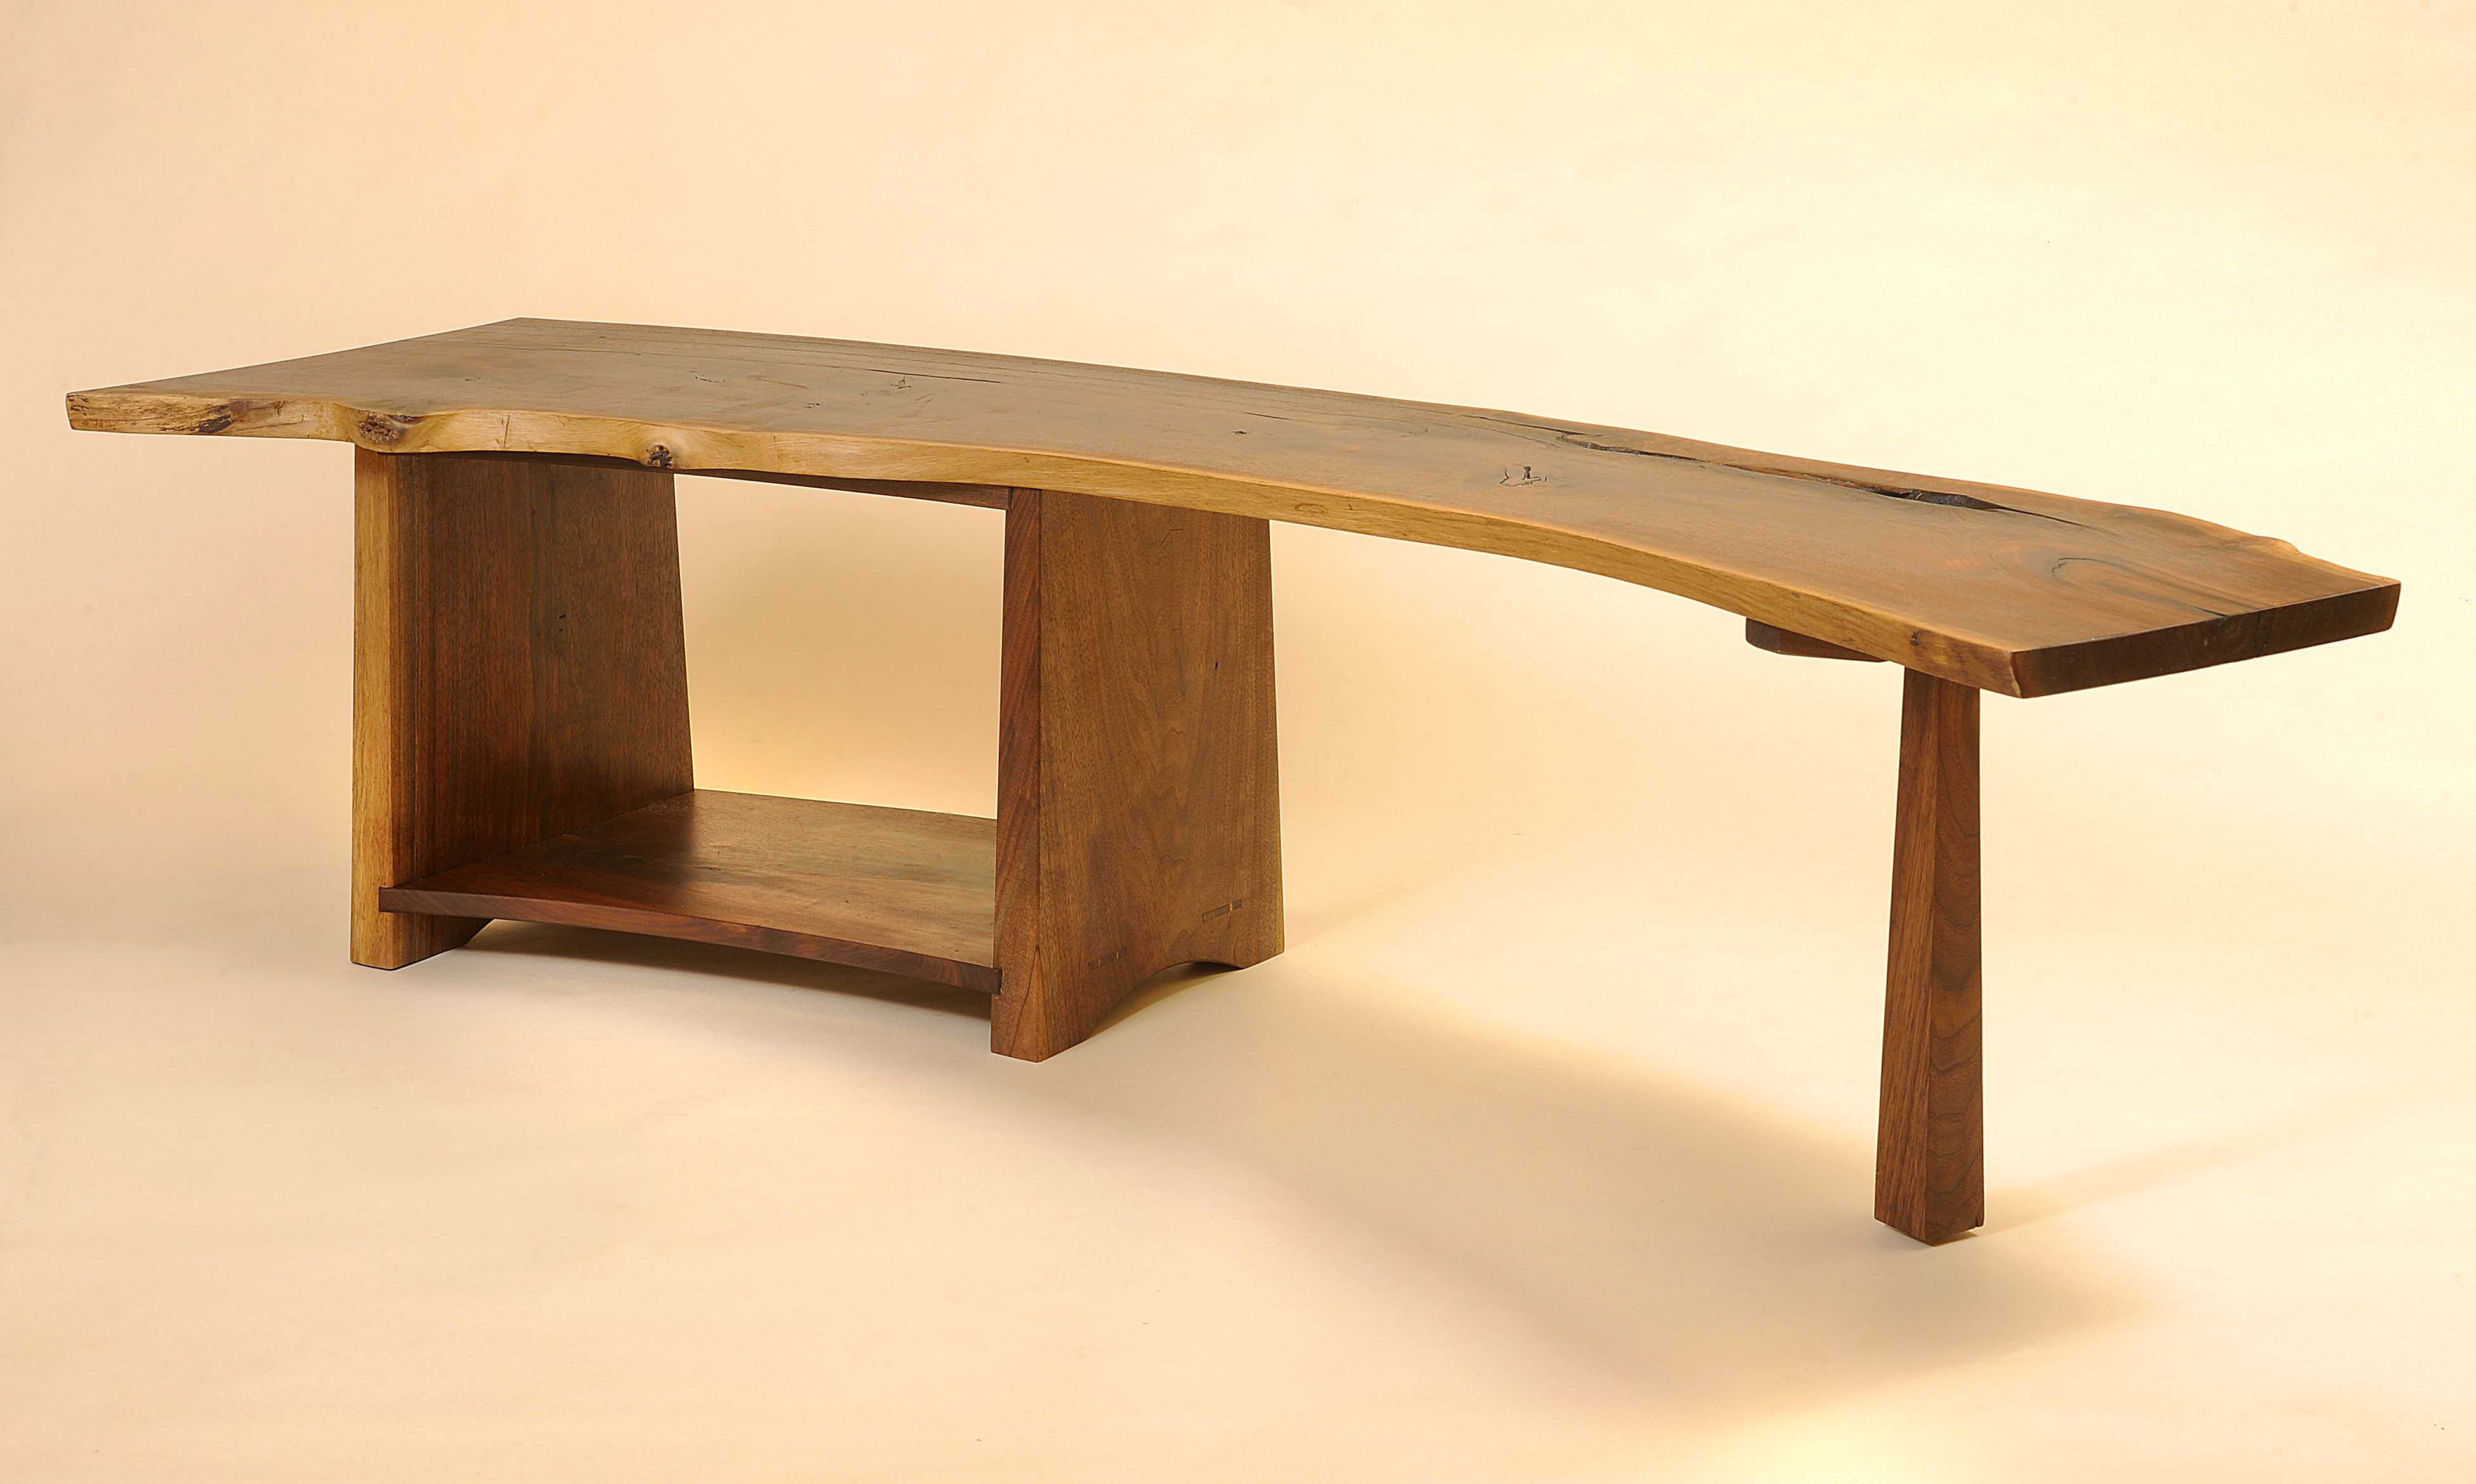 Live edge jc sterling fine furniture shibui curved coffee table geotapseo Image collections